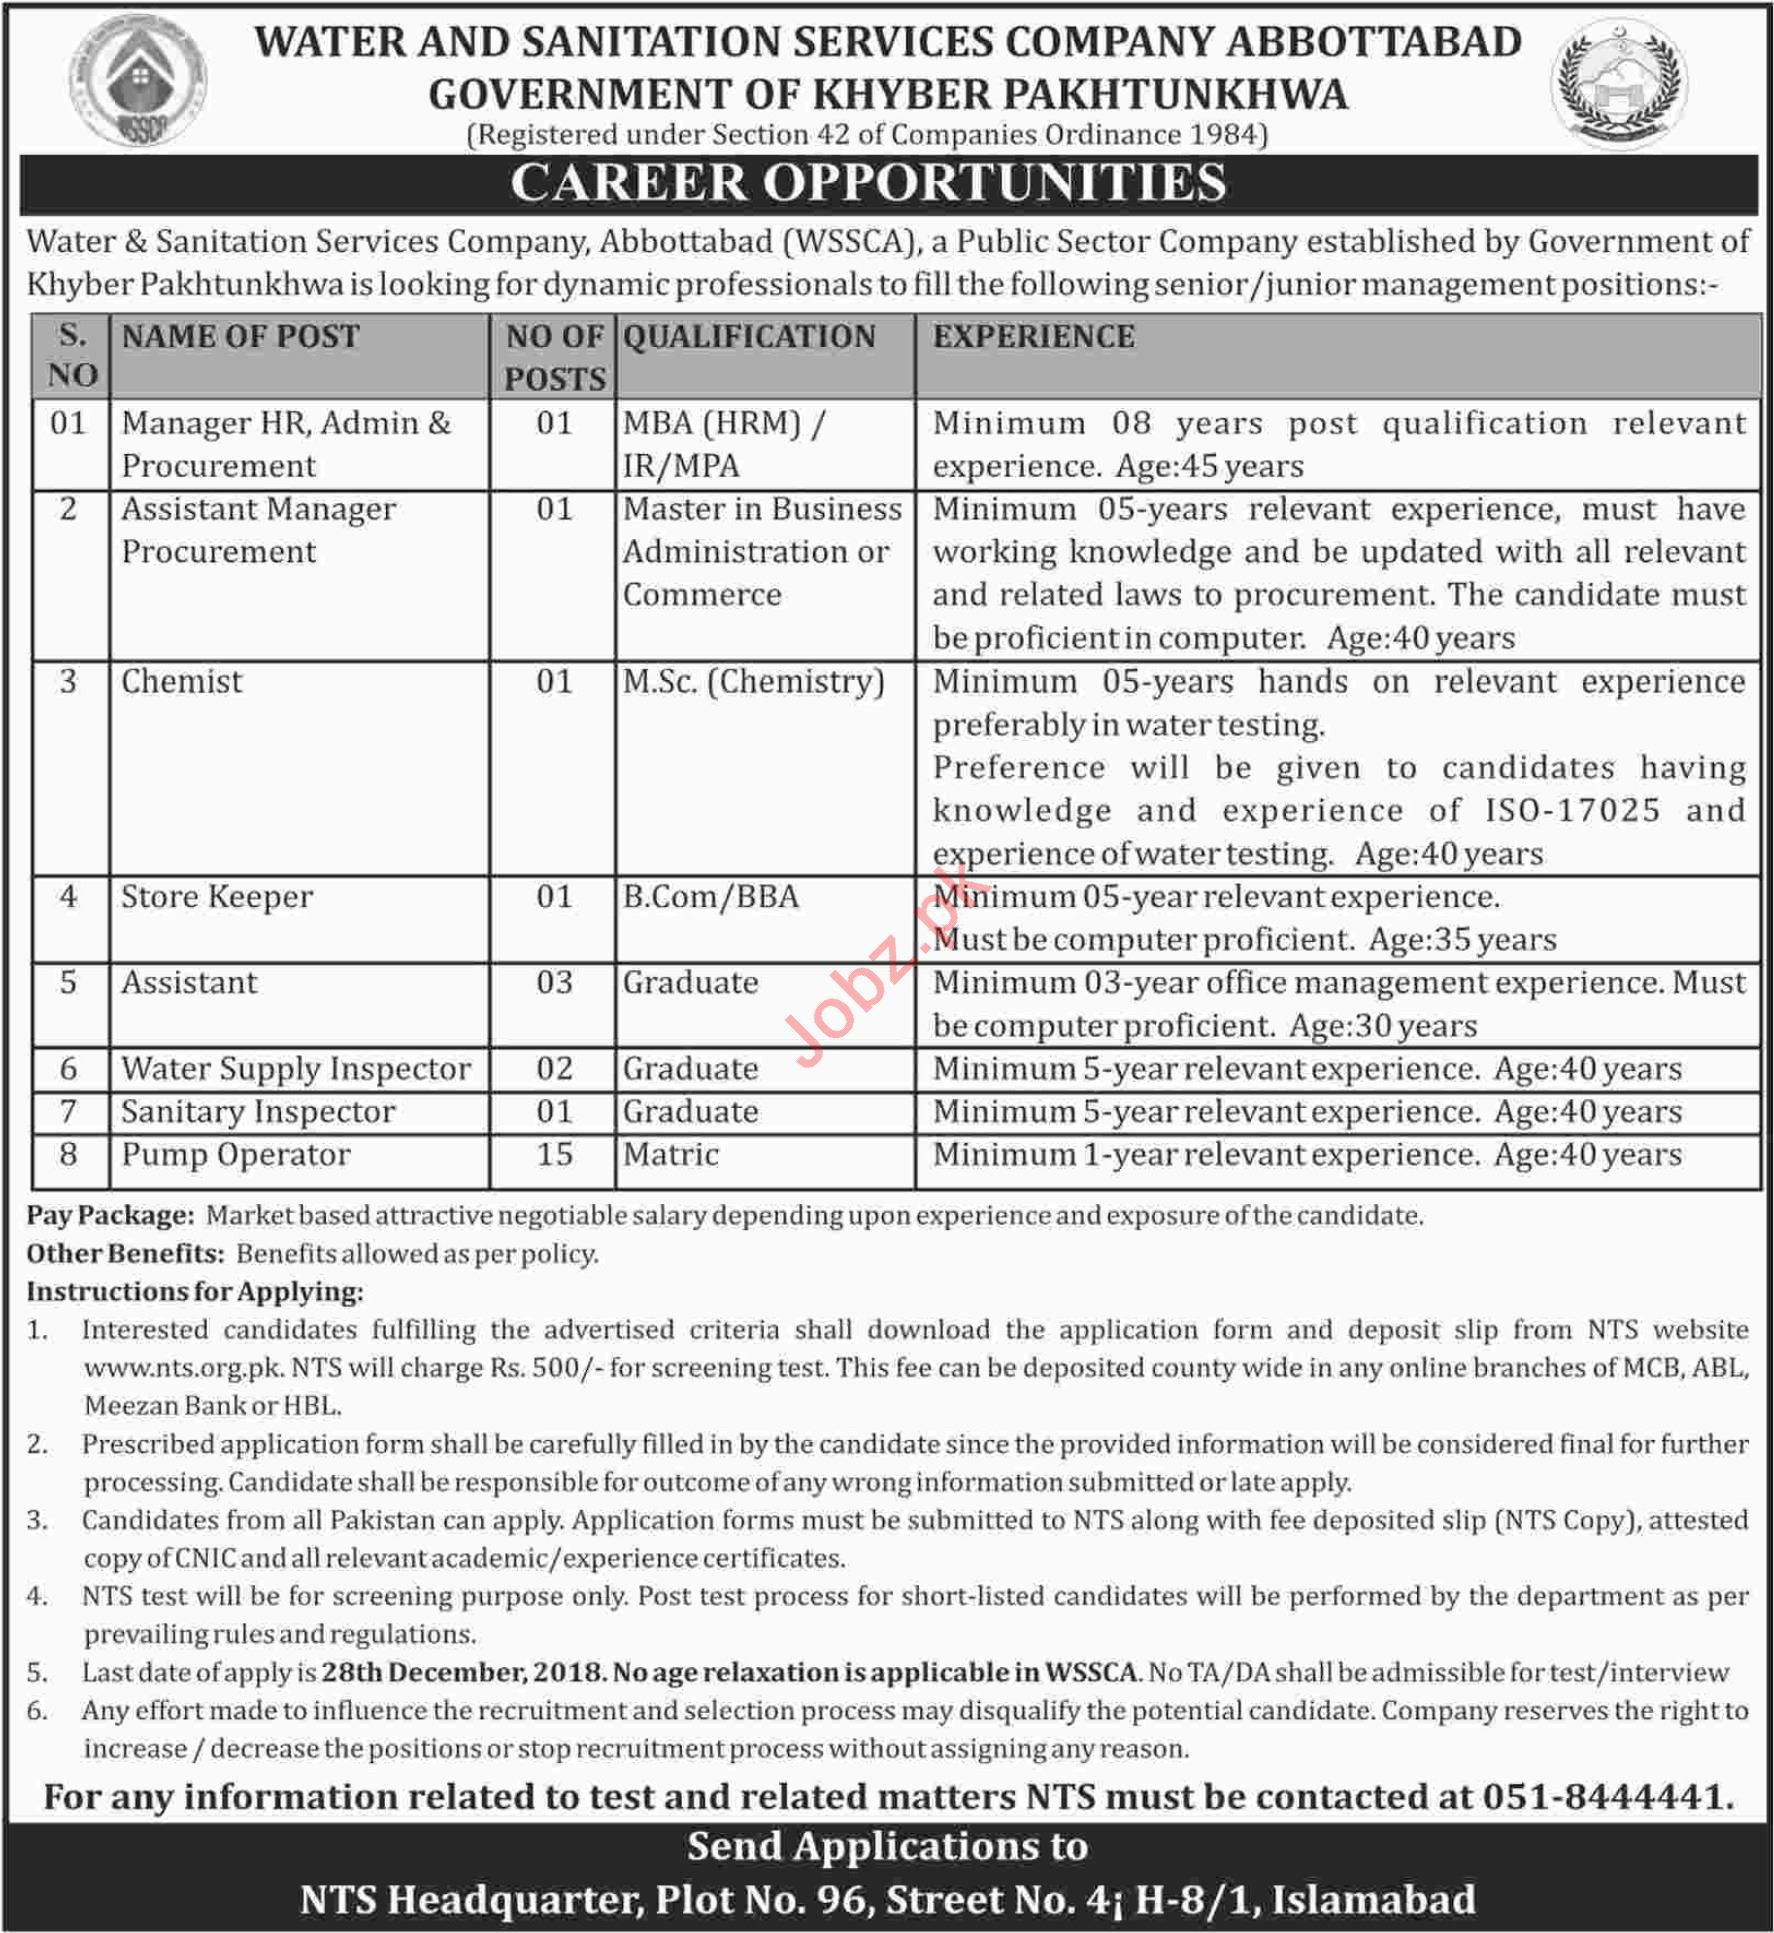 WSSC Abbottabad Jobs 2019 for Managers & Pump Operators